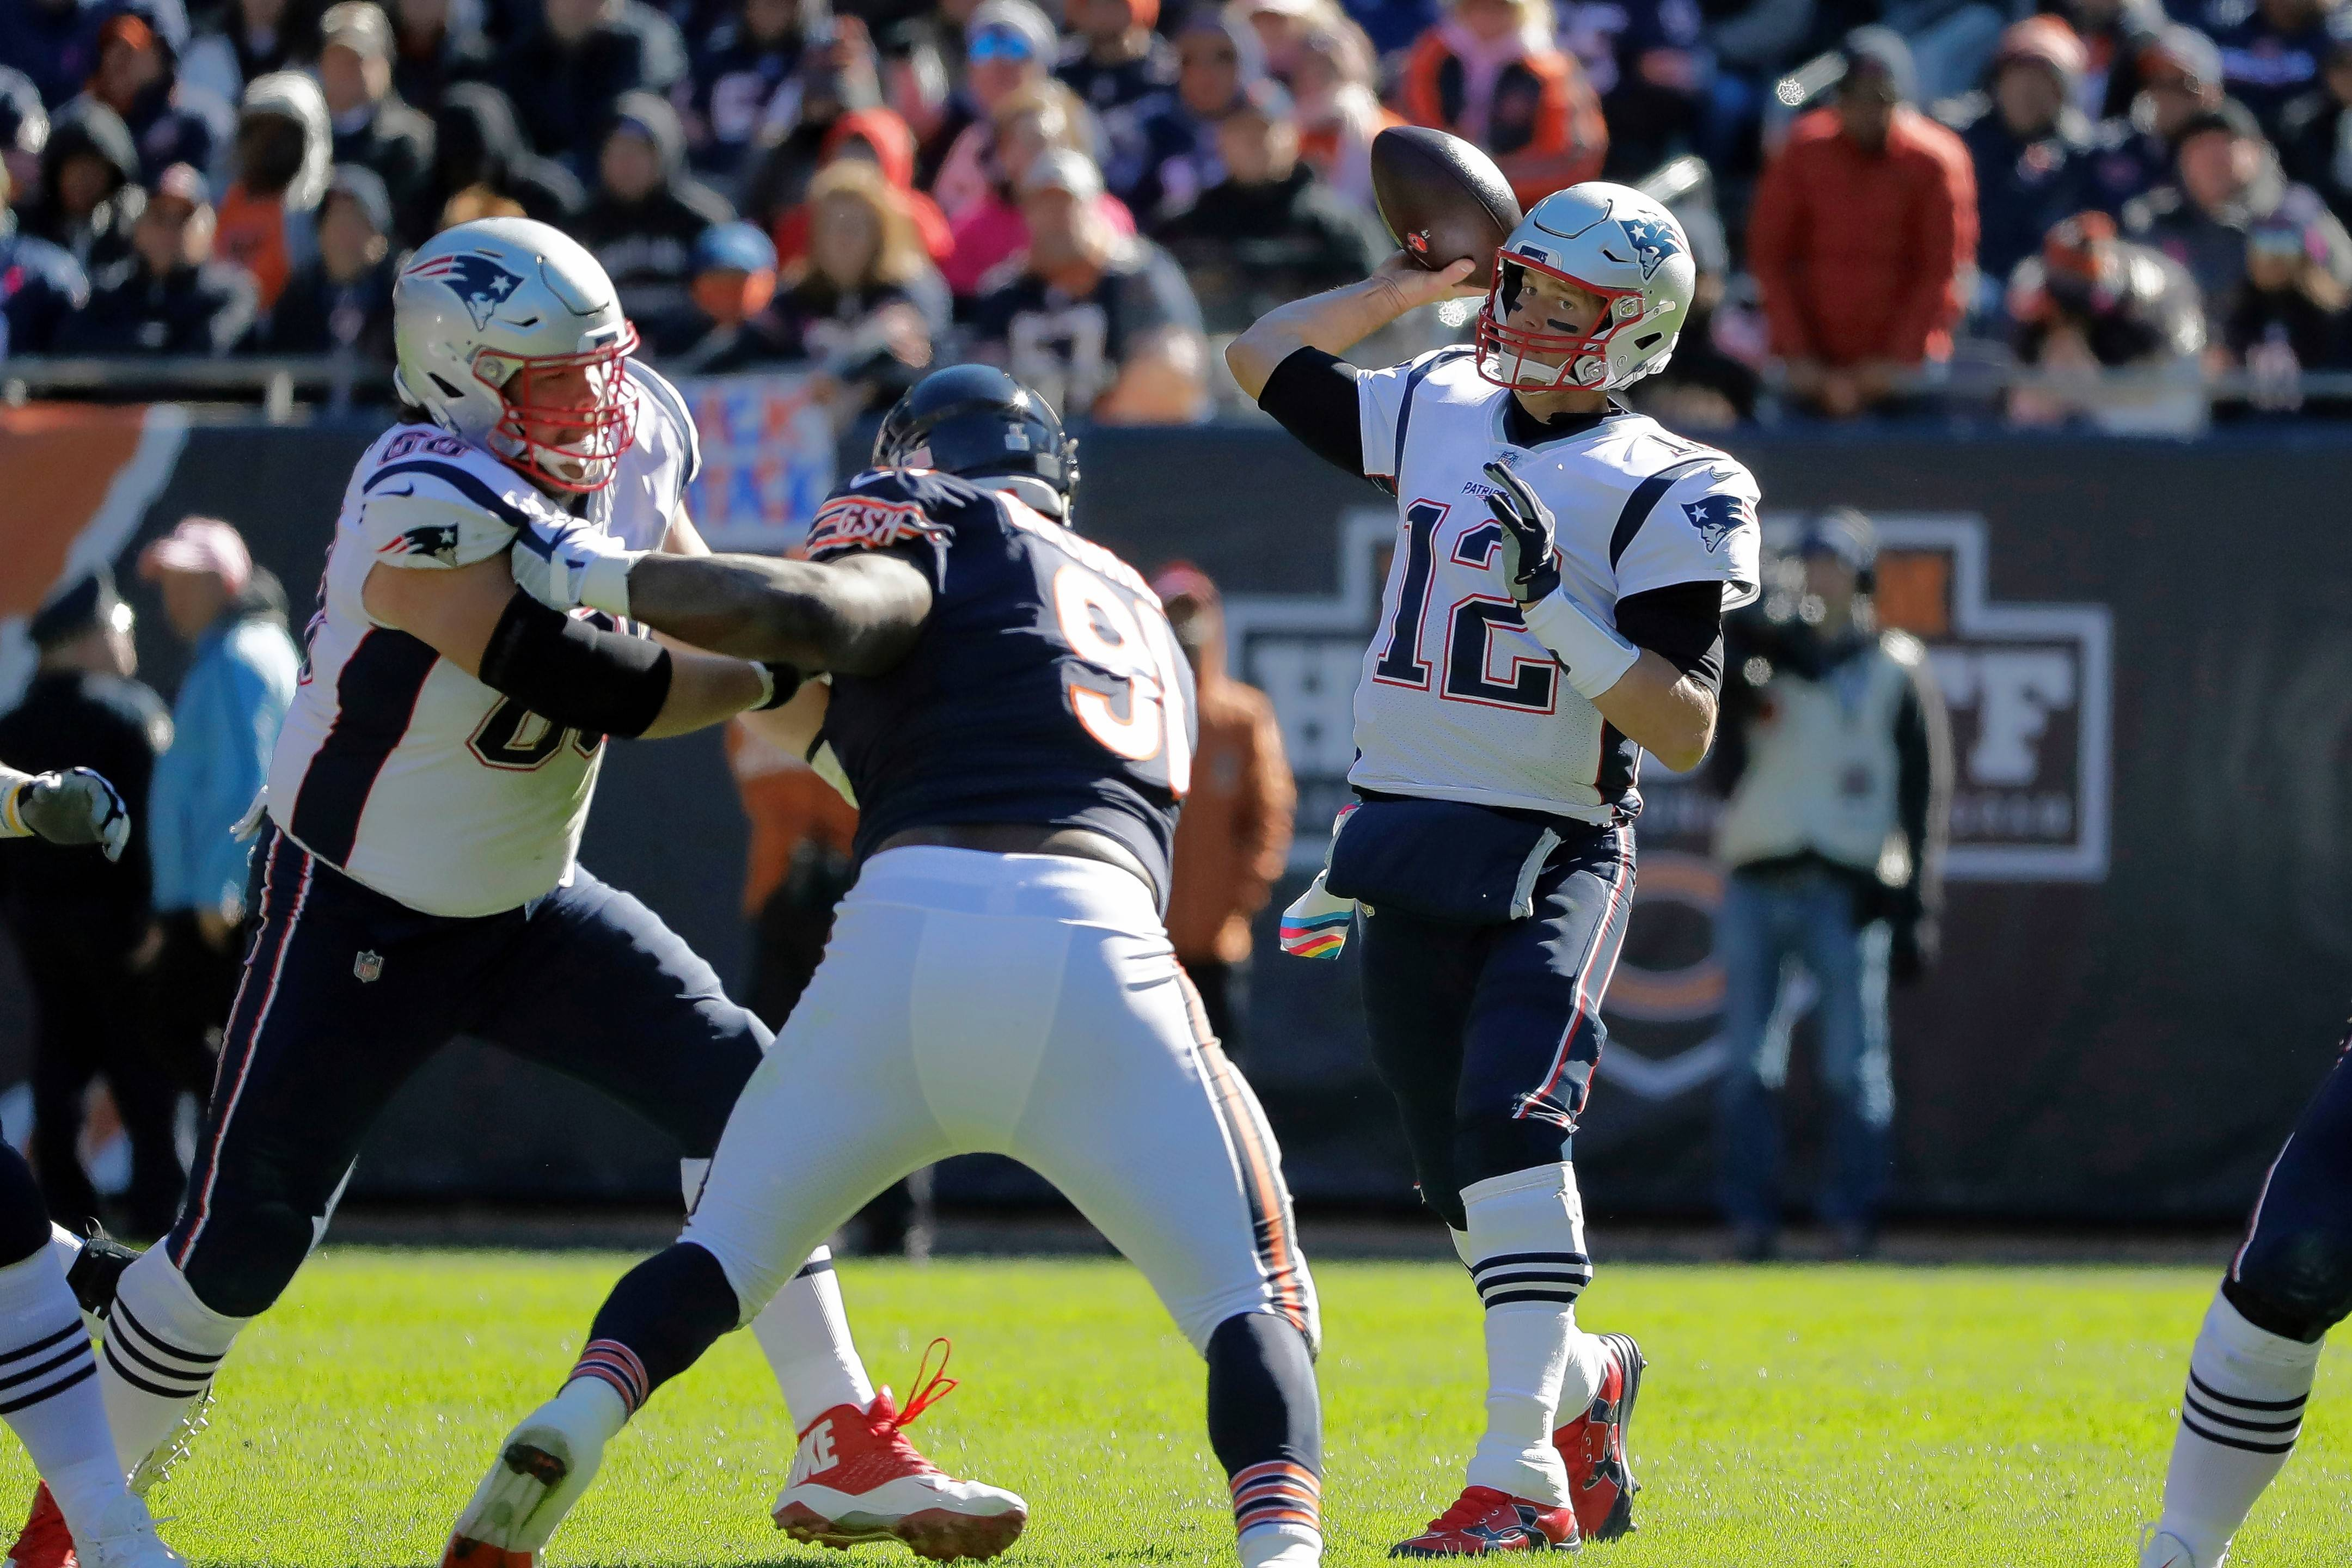 The Chicago Bears defense managed only one sack on New England Patriots quarterback Tom Brady on Sunday. Nine days ago, the Bears had the league's top sack percentage but have since dropped to seventh.